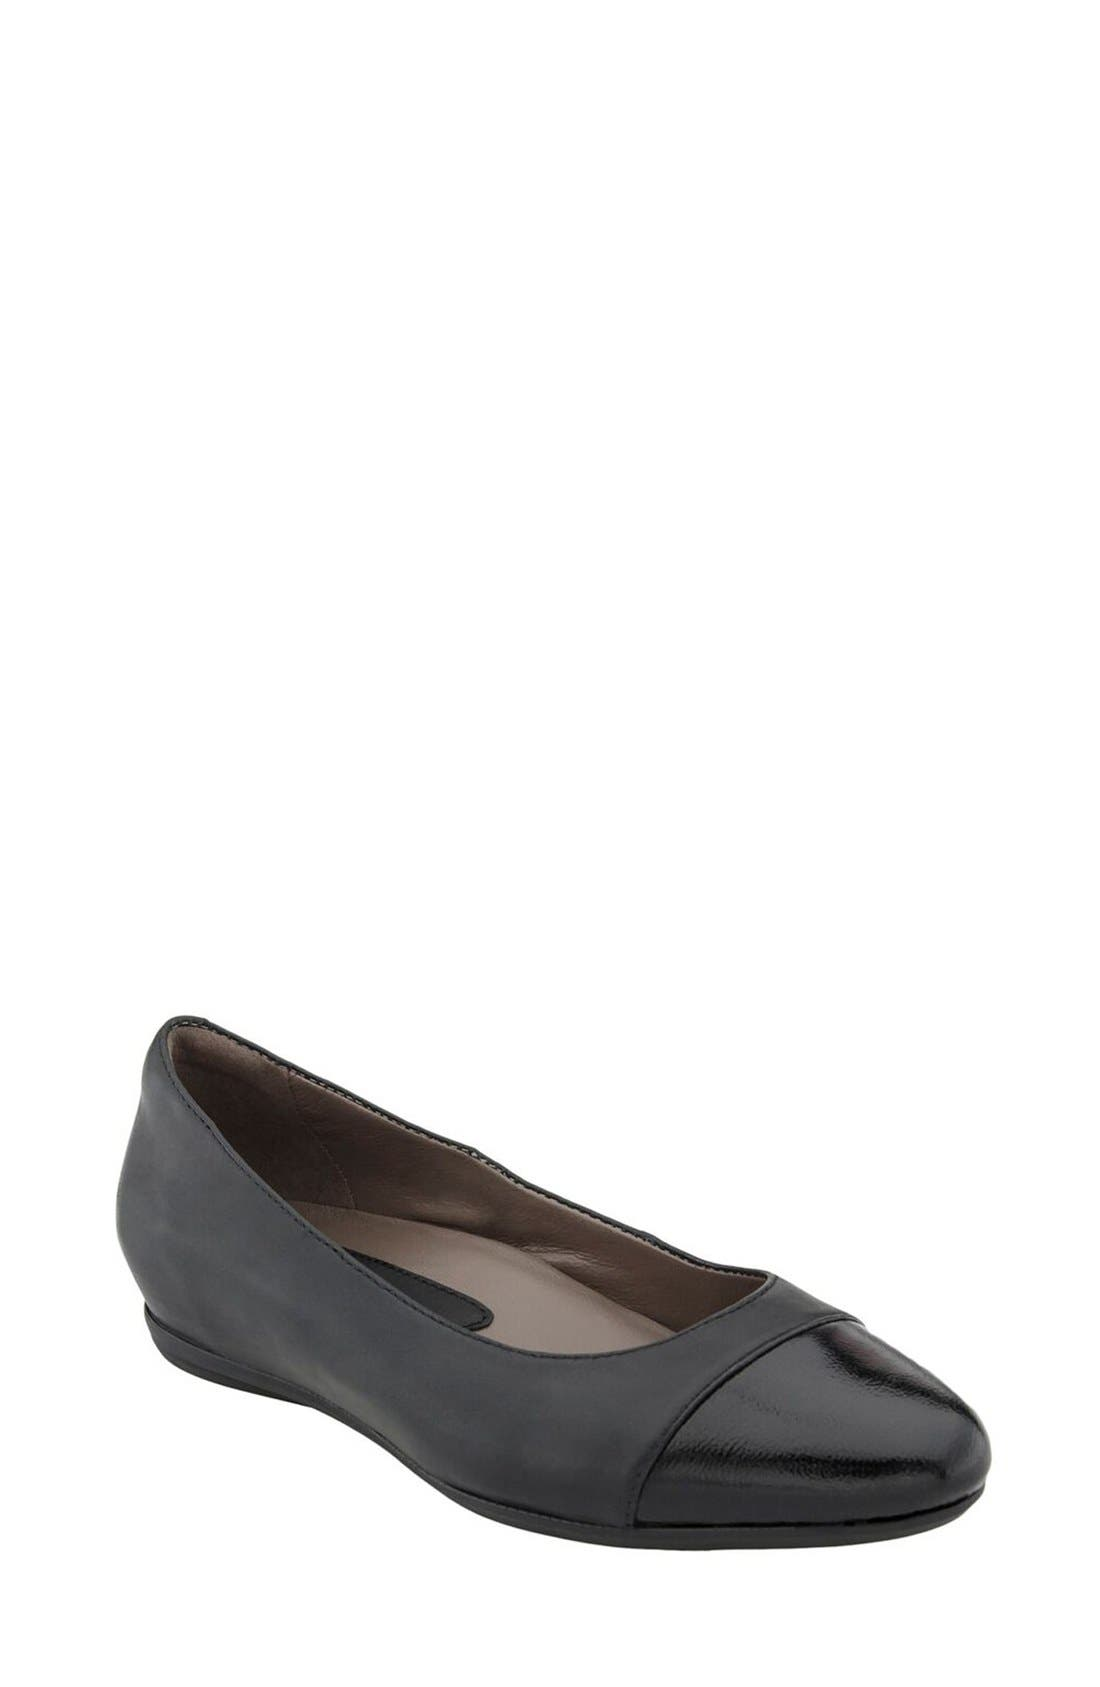 Alternate Image 1 Selected - Earthies® 'Hanover' Cap Toe Flat (Women)